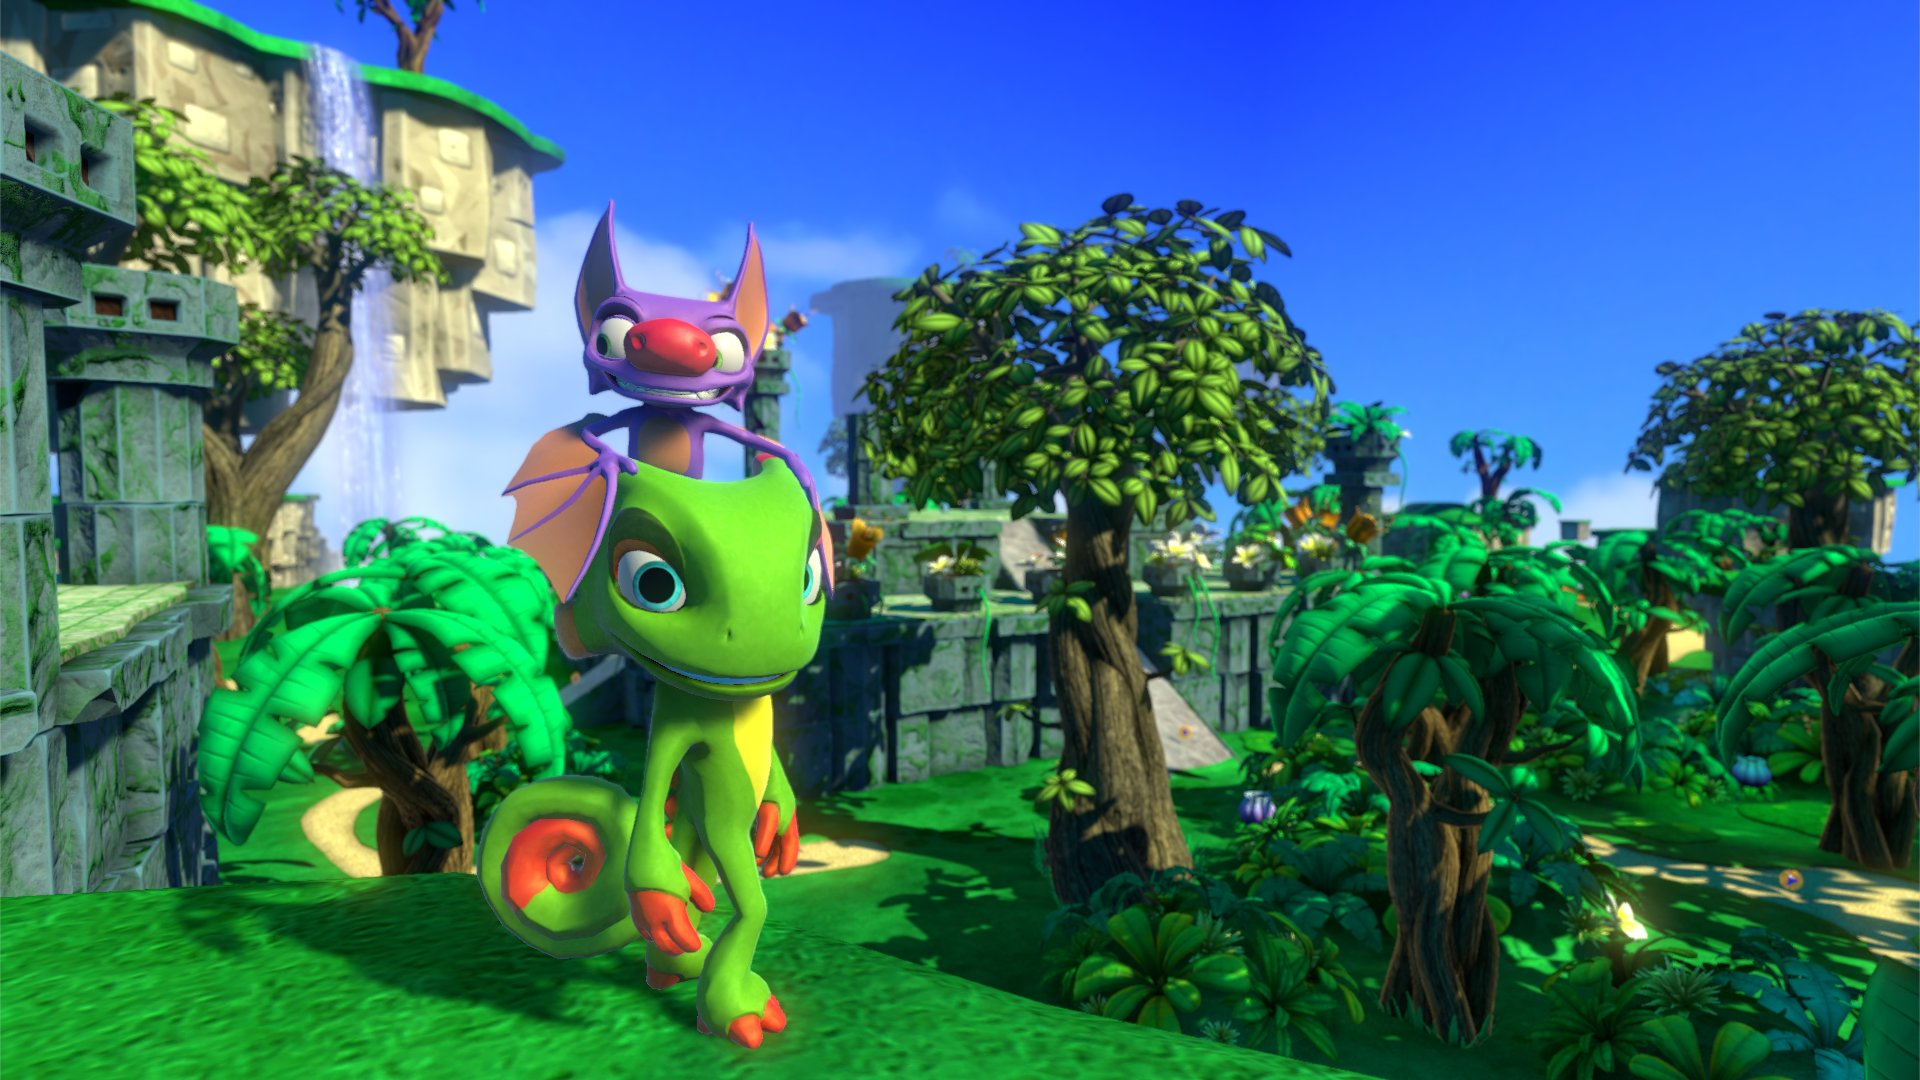 BlurryPhoenix Reflects: Yooka-Laylee